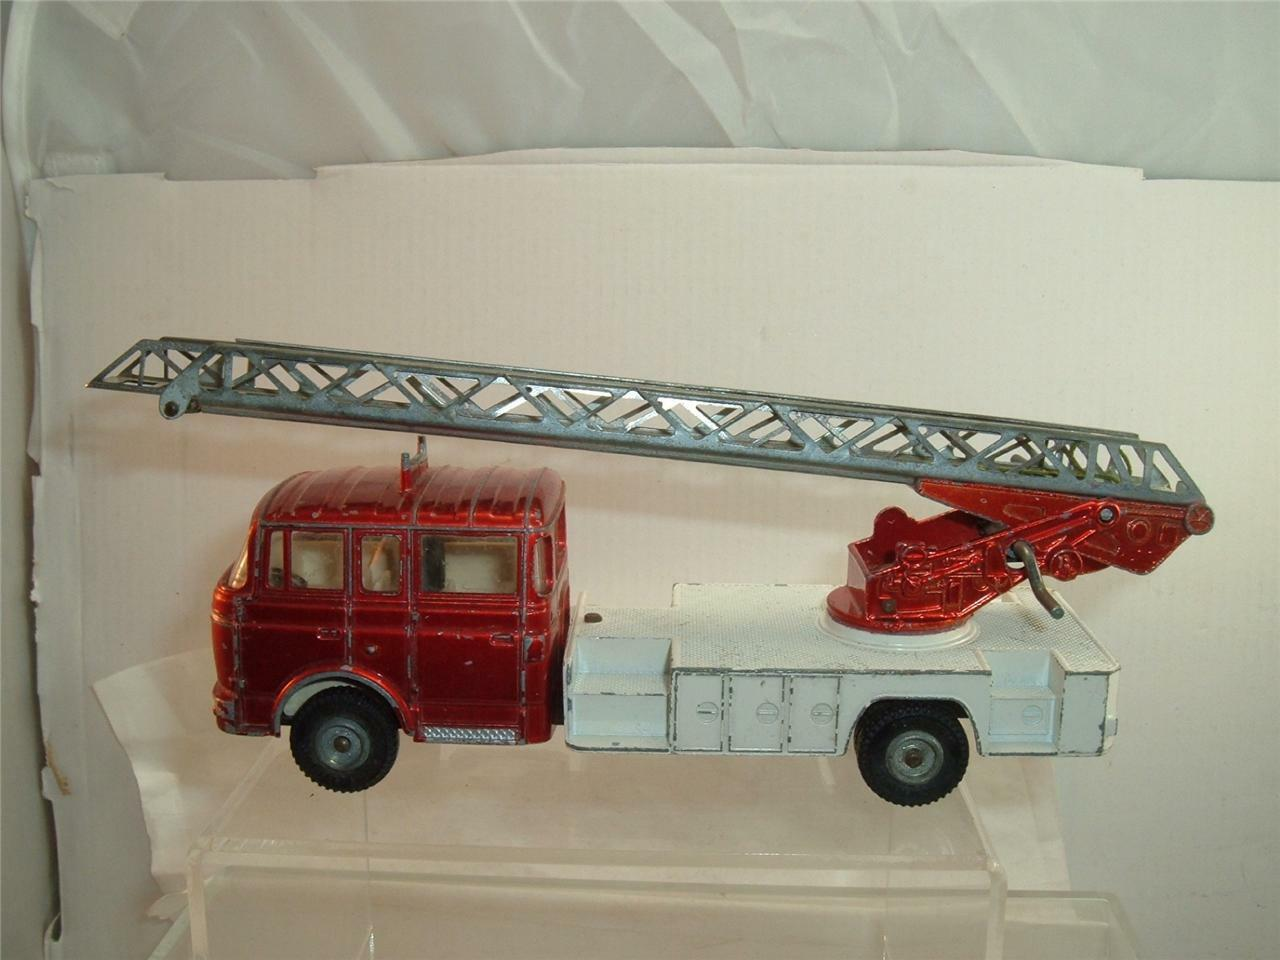 DINKY DINKY DINKY TOYS 956 Turntable Fire Escape BERLIET USED ORIGINAL Scroll Down 4   | Digne  | Authentique  | Attrayant Et Durable  8db0a0